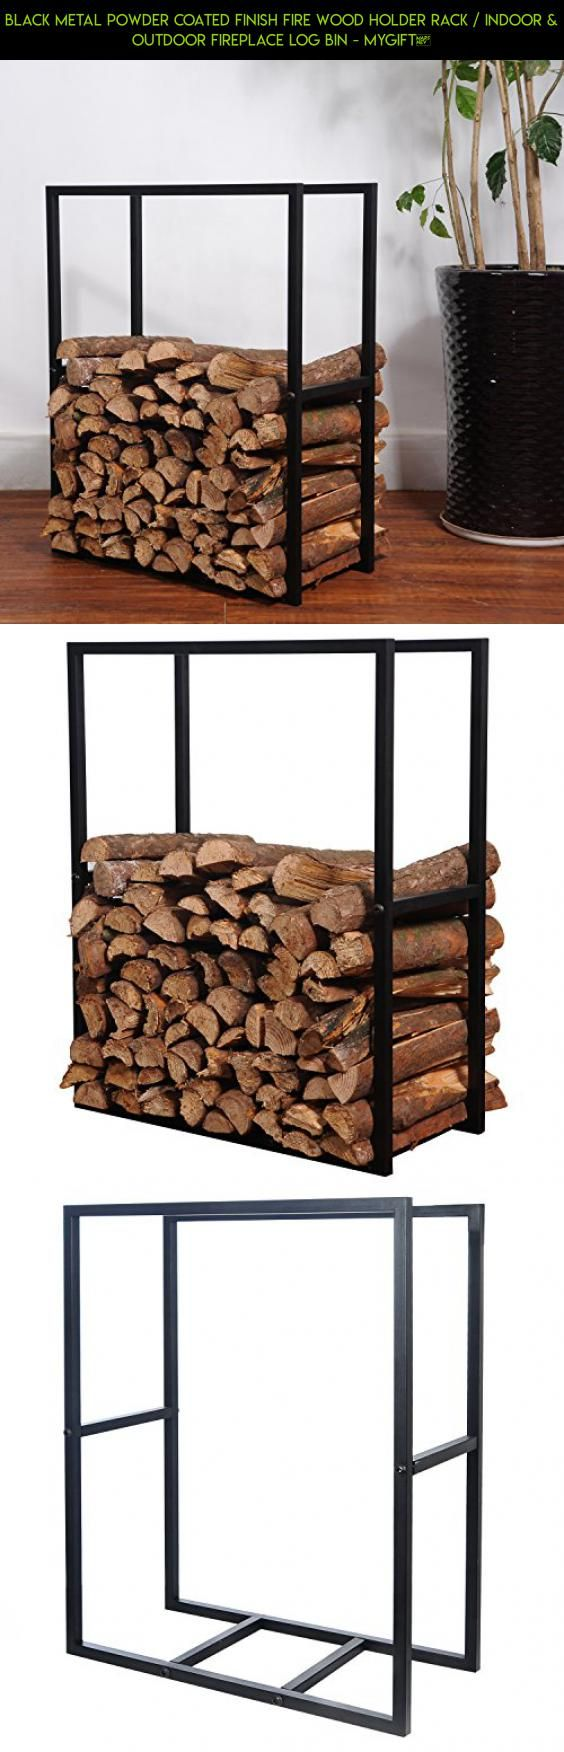 Black Metal Powder Coated Finish Fire Wood Holder Rack / Indoor & Outdoor Fireplace Log Bin - MyGift® #drone #technology #bins #fpv #camera #with #storage #products #kit #plans #racing #tech #rack #shopping #gadgets #parts